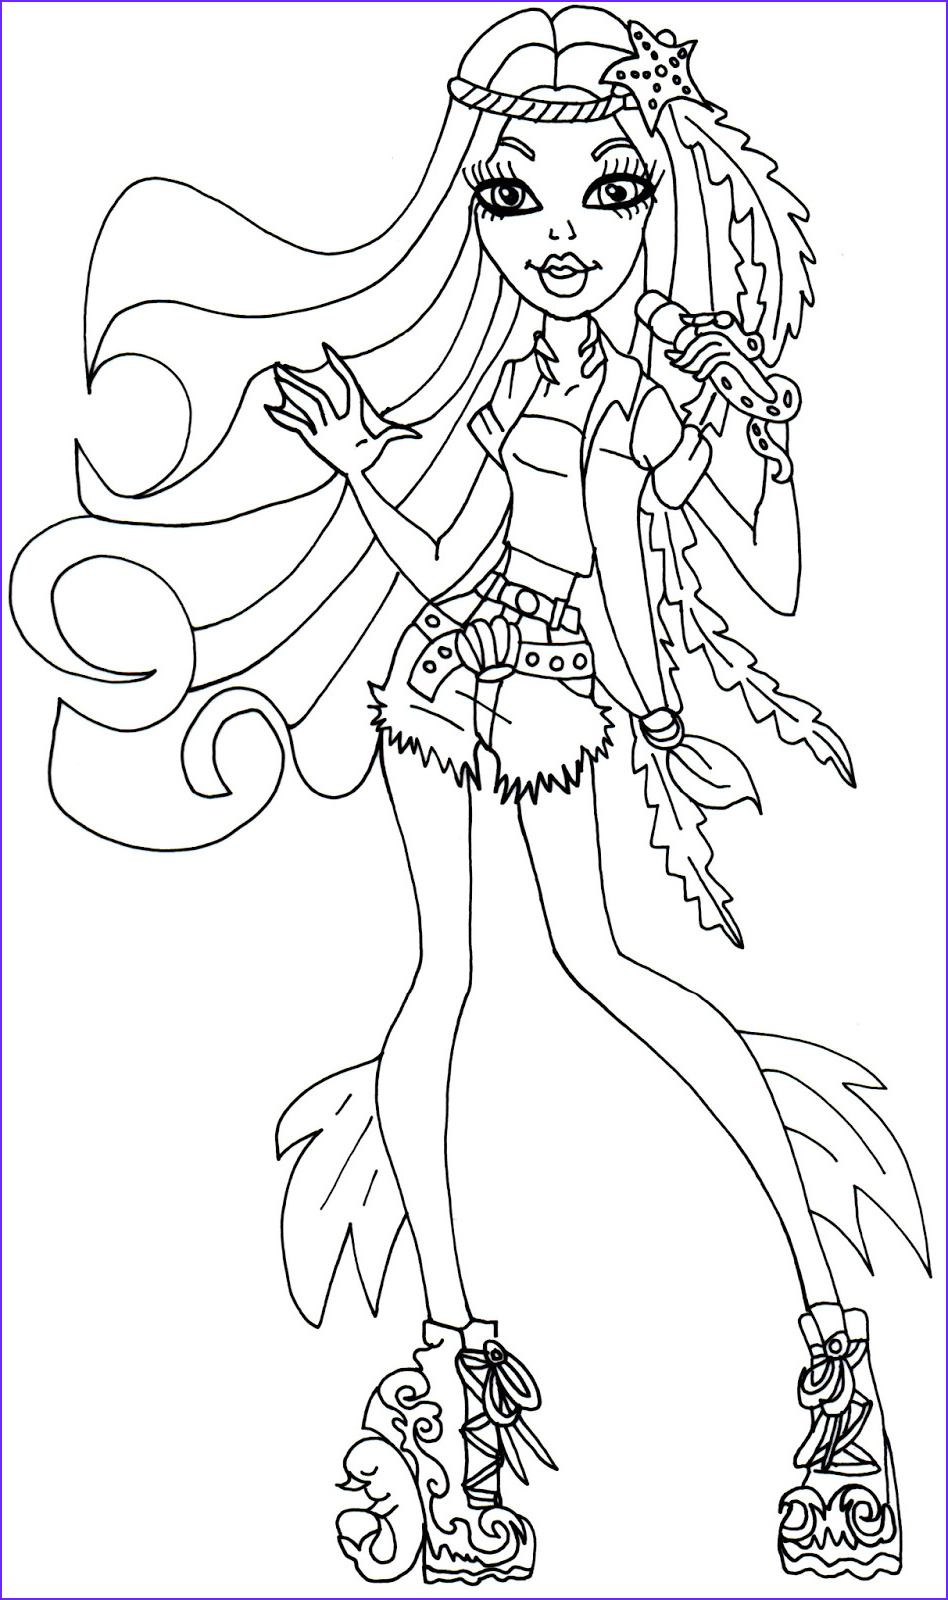 Coloring Page Of Monster High Awesome Image Free Printable Monster High Coloring Page for Madison Fear